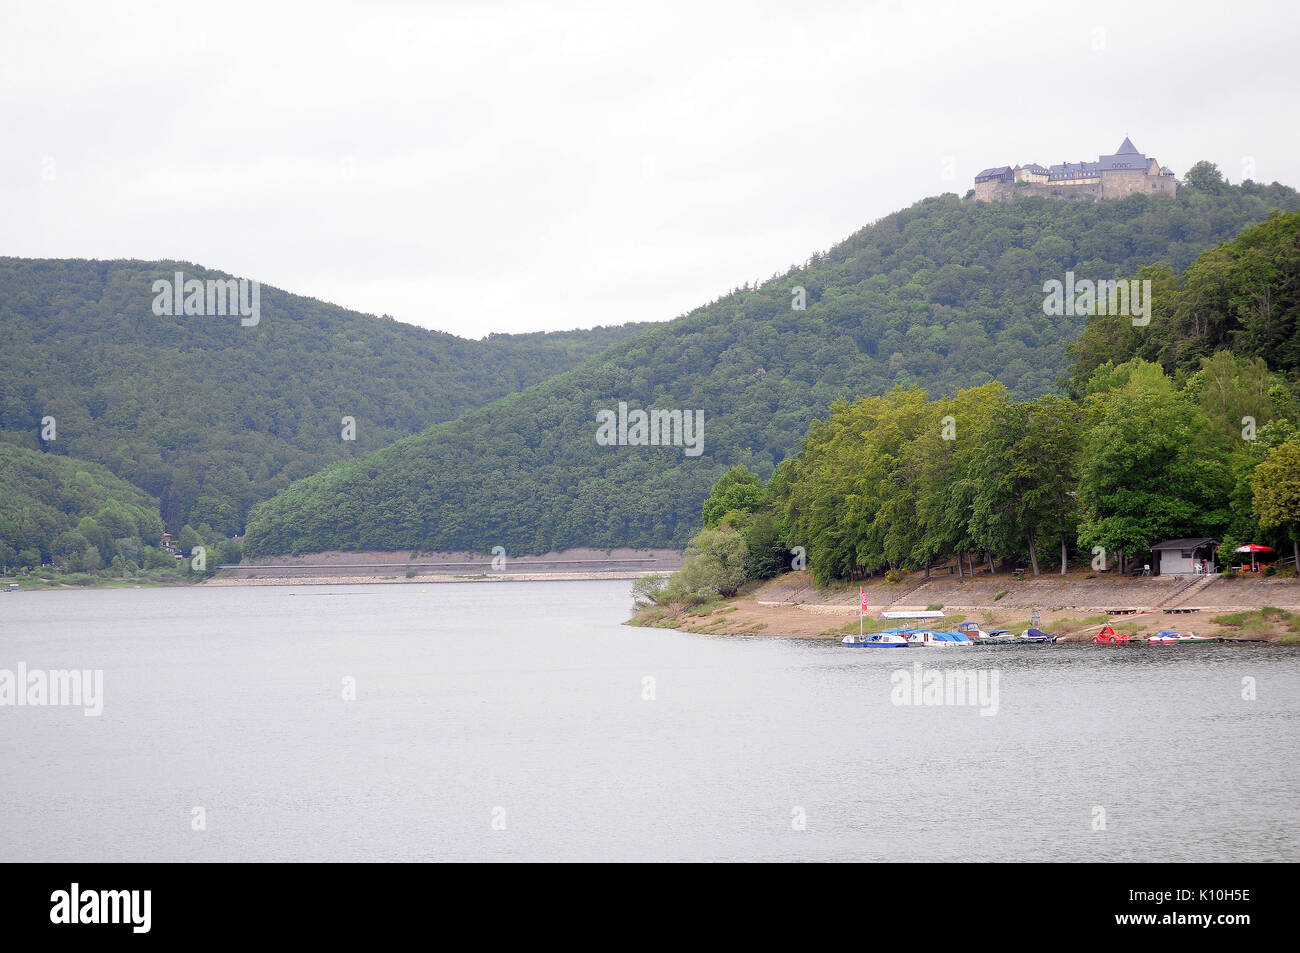 Waldeck Castle and the gorge which the attacking aircraft had to dive into (to the left of the castle in this view) seen from the Eder dam. - Stock Image